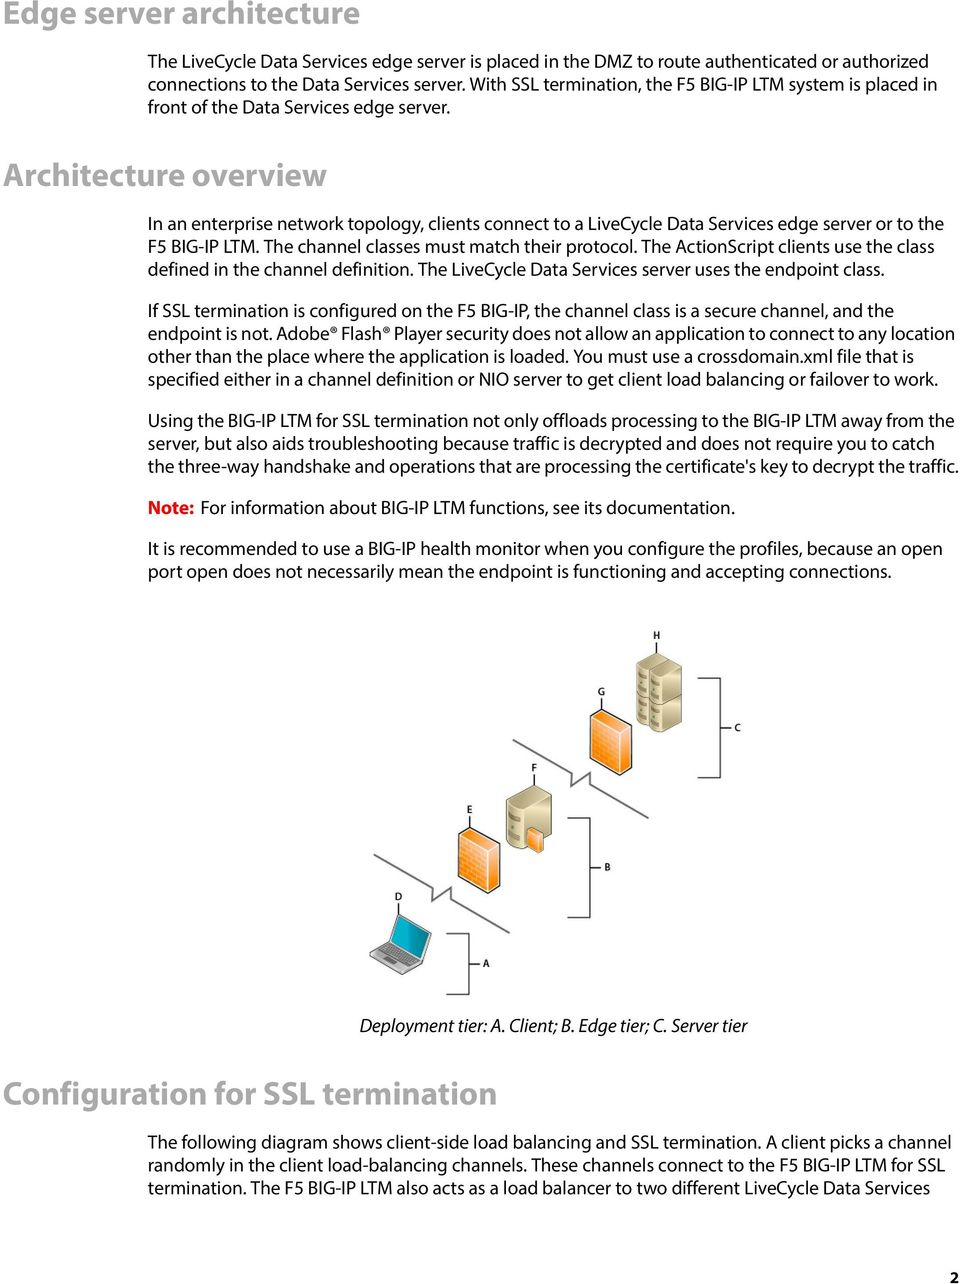 Architecture overview In an enterprise network topology, clients connect to a LiveCycle Data Services edge server or to the F5 BIG-IP LTM. The channel classes must match their protocol.